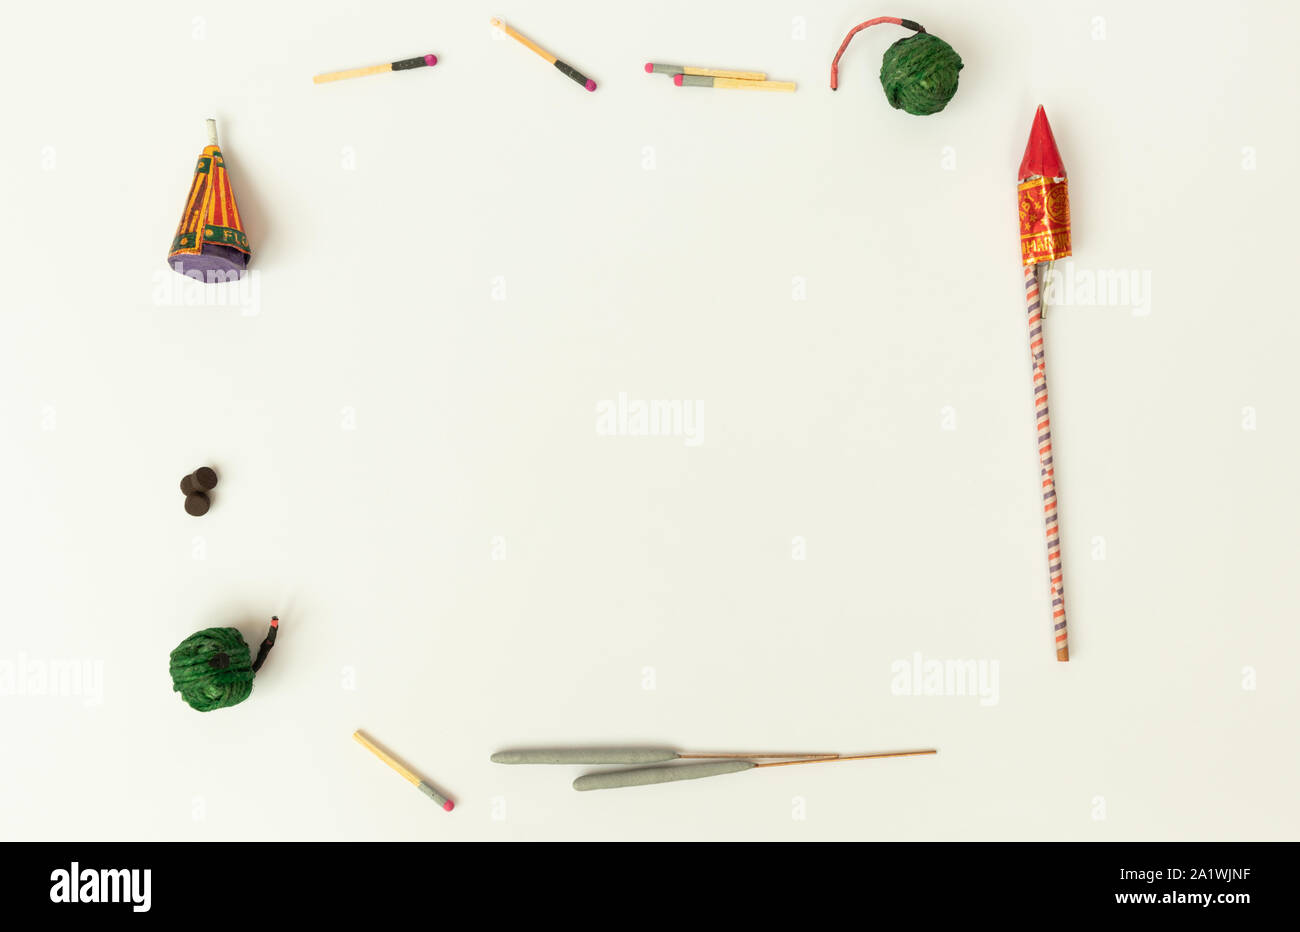 Flat lay of different types of Diwali Firecrackers arranged in frame for copy space on isolated background Stock Photo